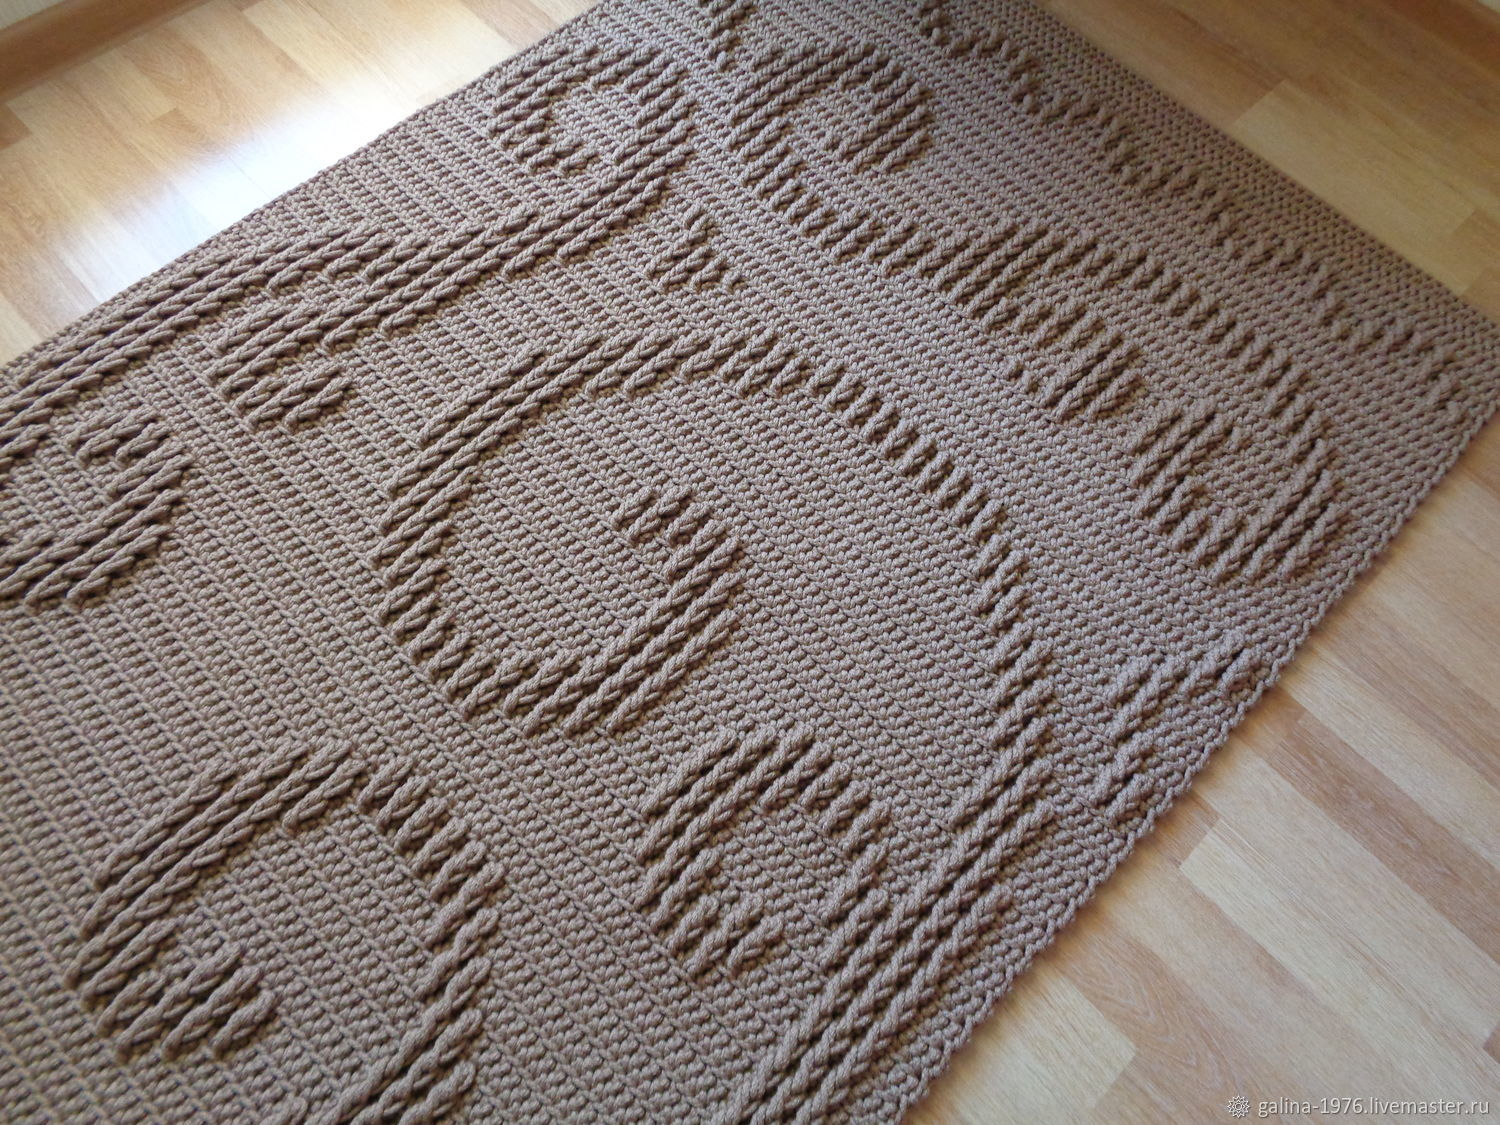 Knitted track ' Eternity', Carpets, Voronezh,  Фото №1